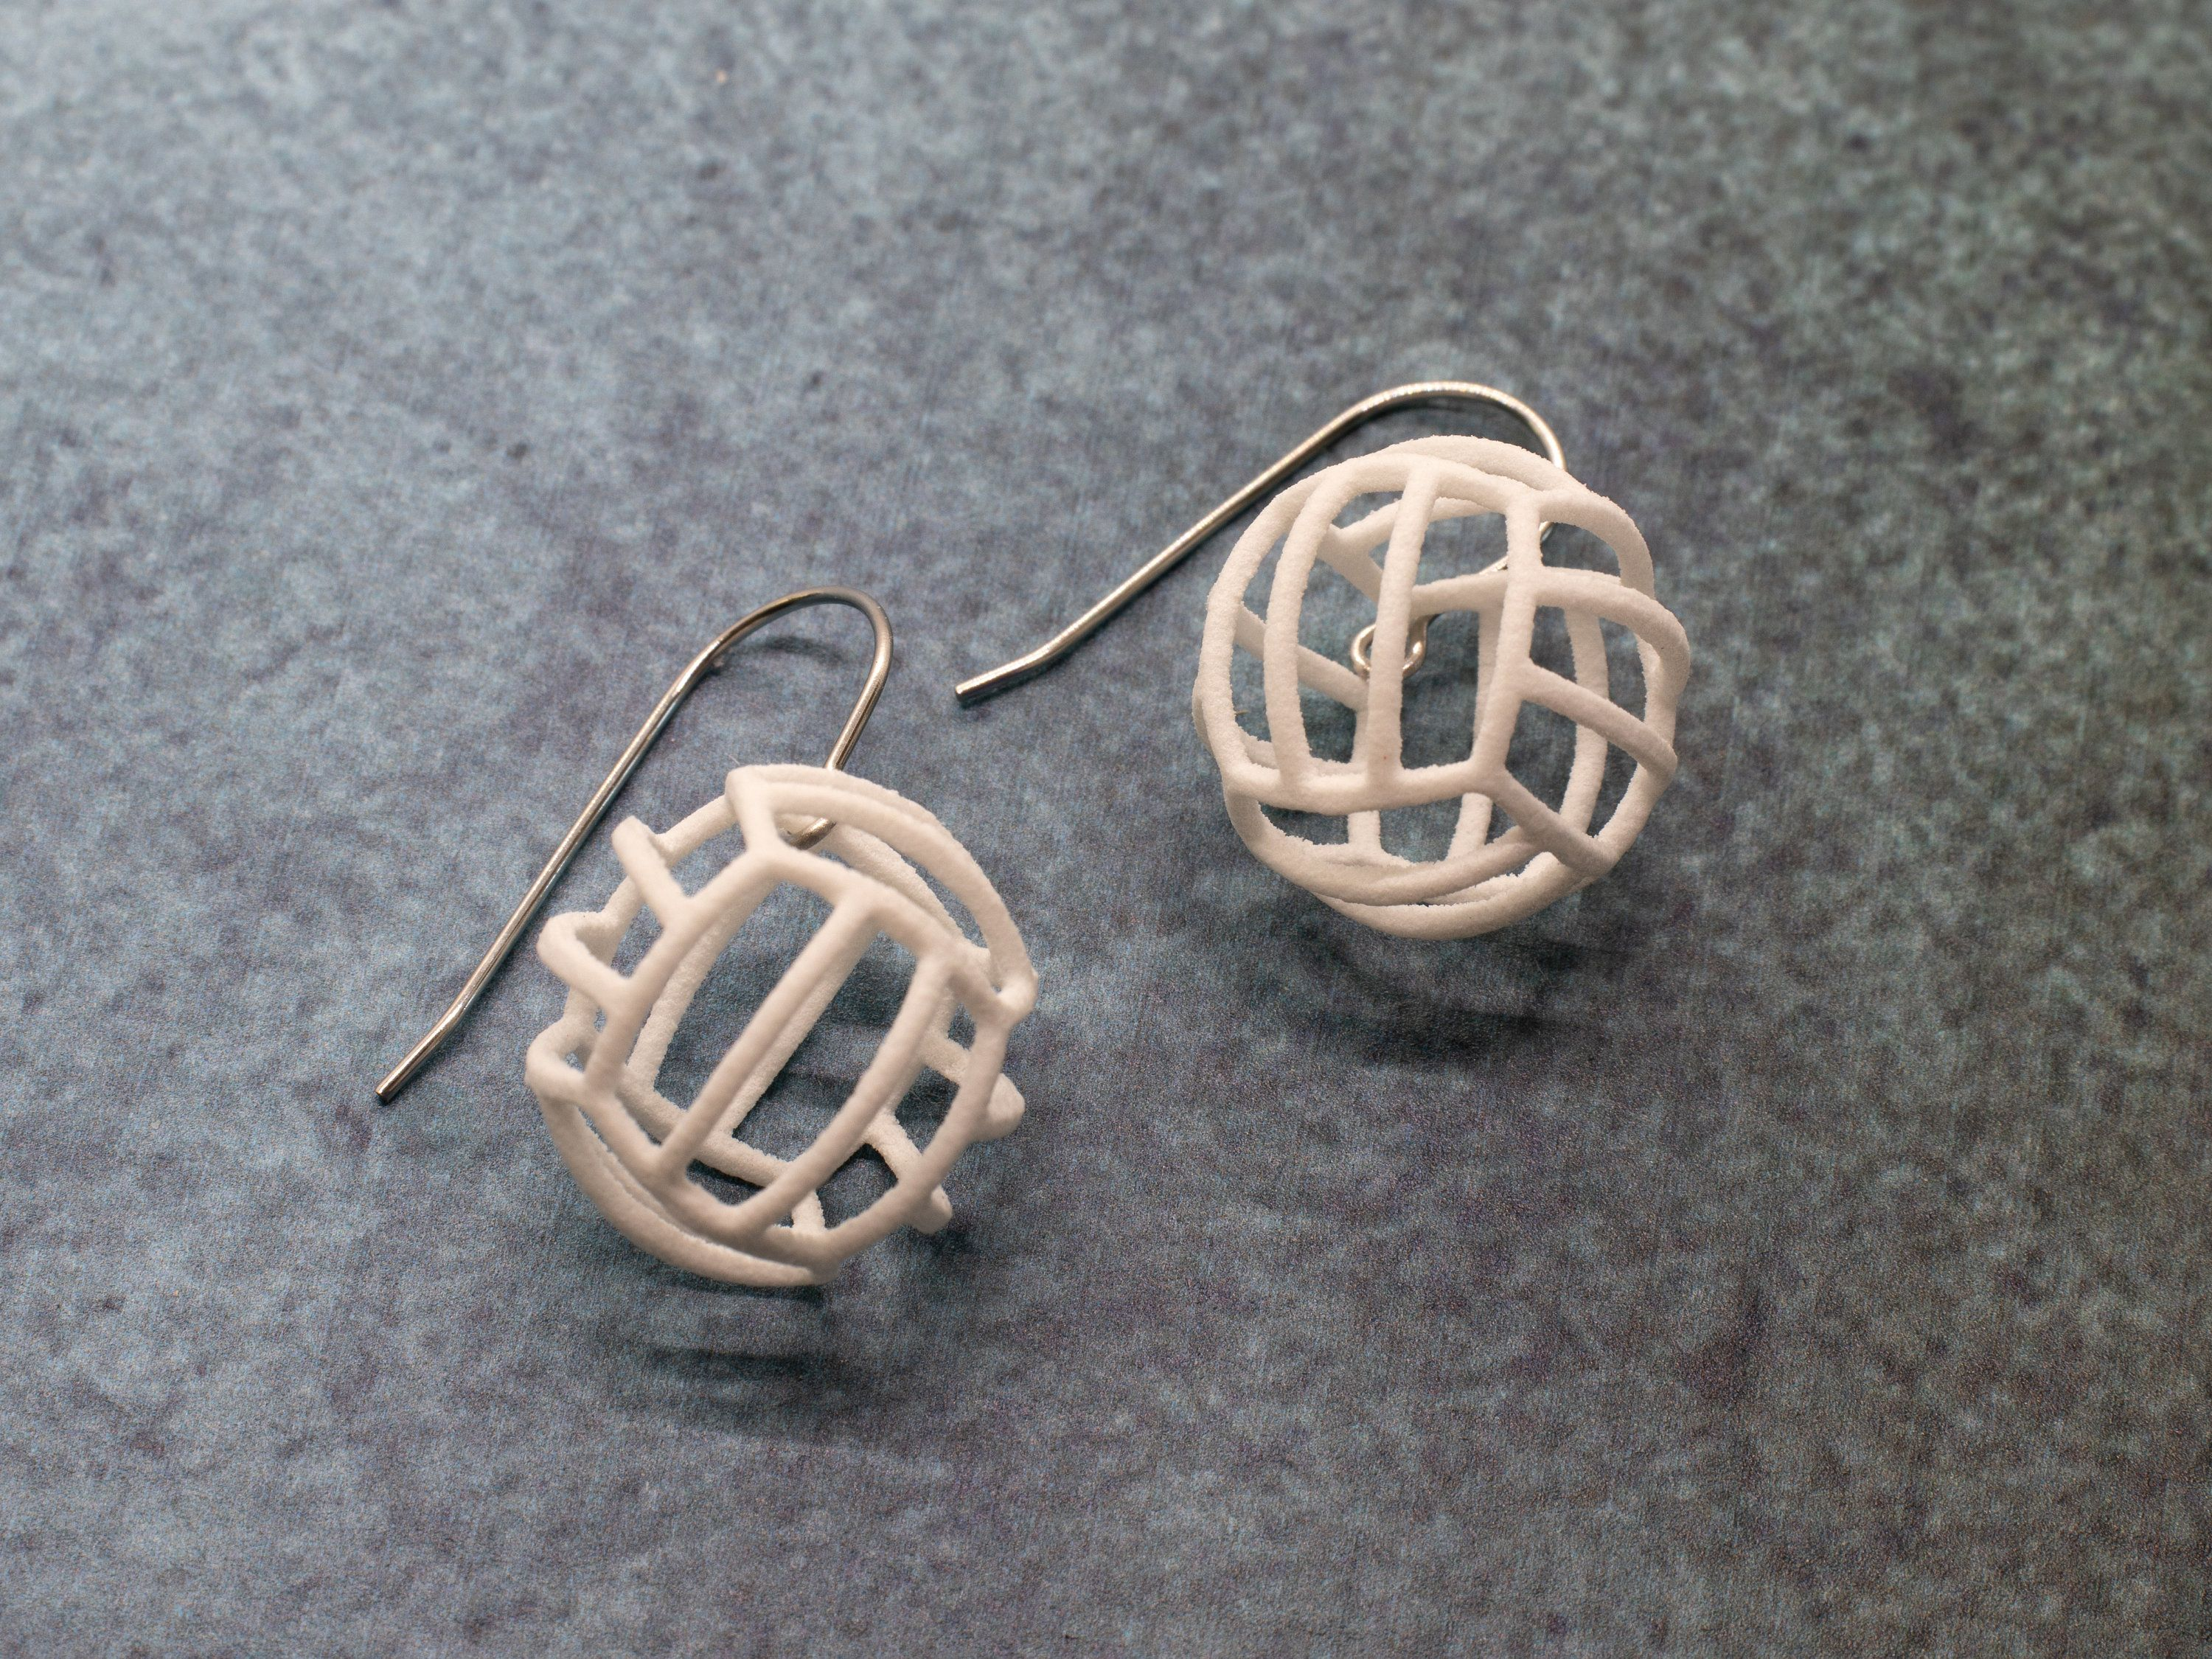 Volleyball Earrings 3d Printed White Ball Sport Jewelry Etsy In 2020 Fitness Jewelry Sports Jewelry Earrings